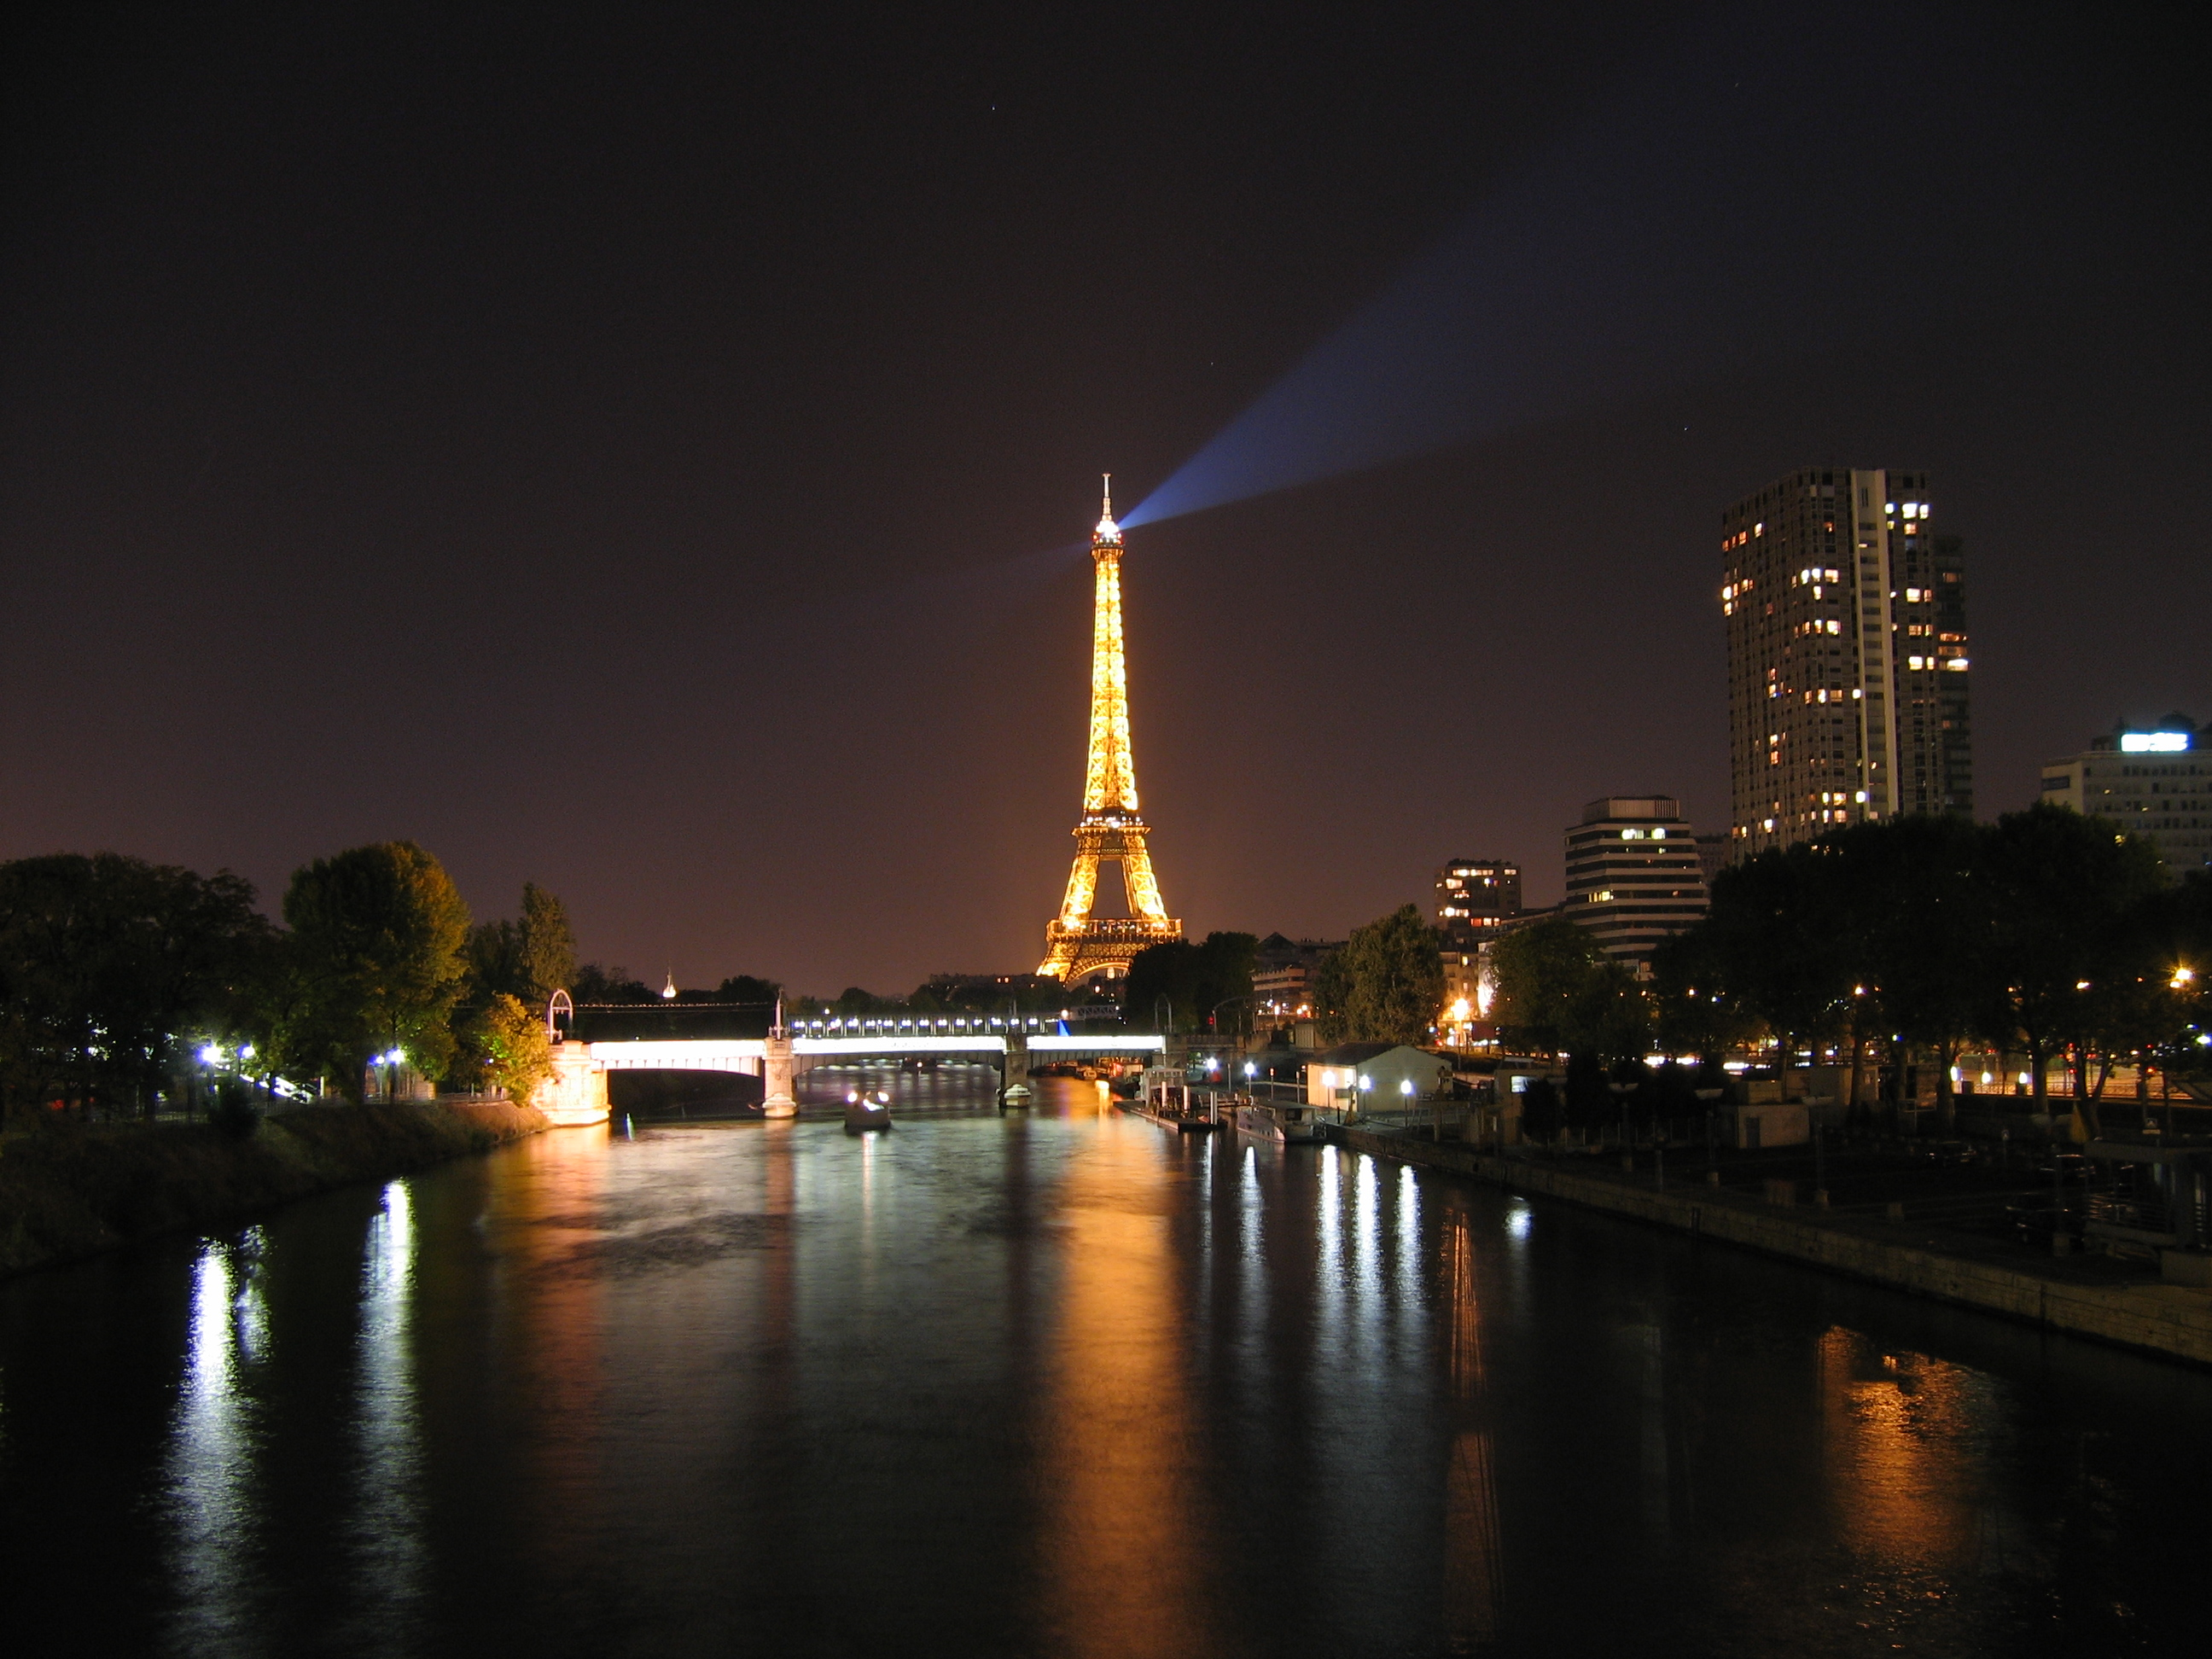 http://fr.academic.ru/pictures/frwiki/69/Eiffel_tower_and_the_seine_at_night.jpg